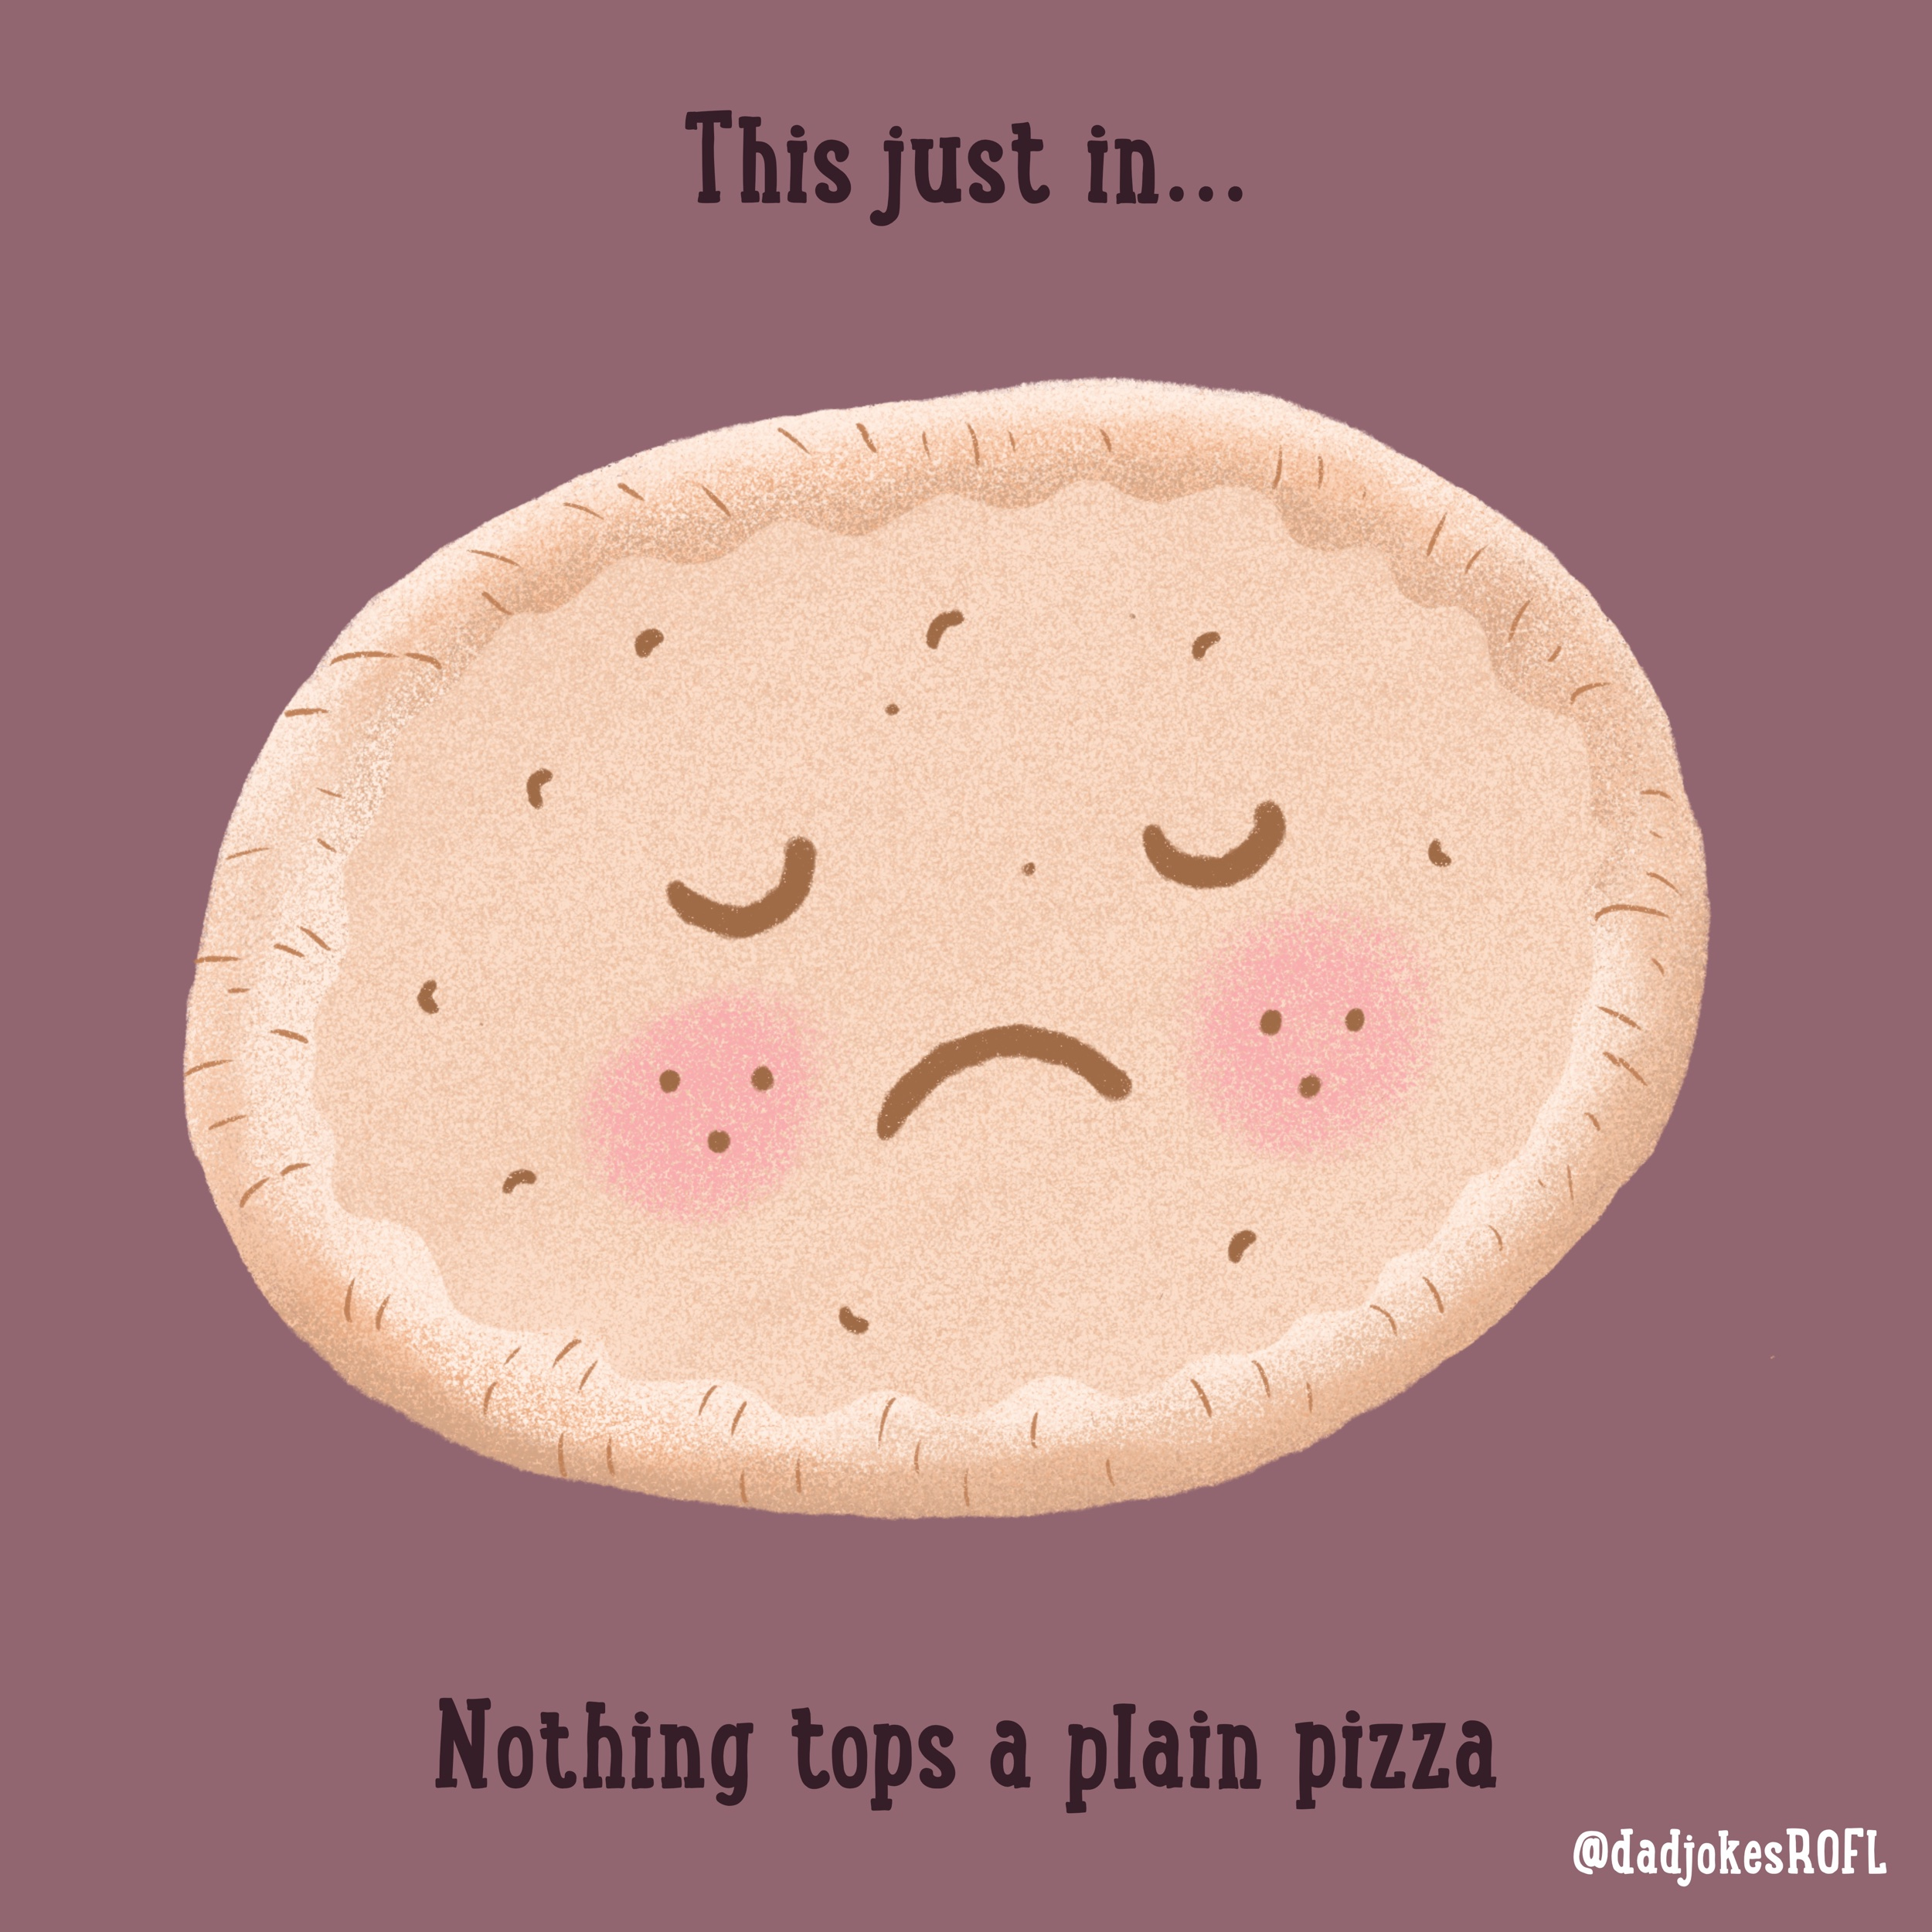 This just in... Nothing tops a plain pizza